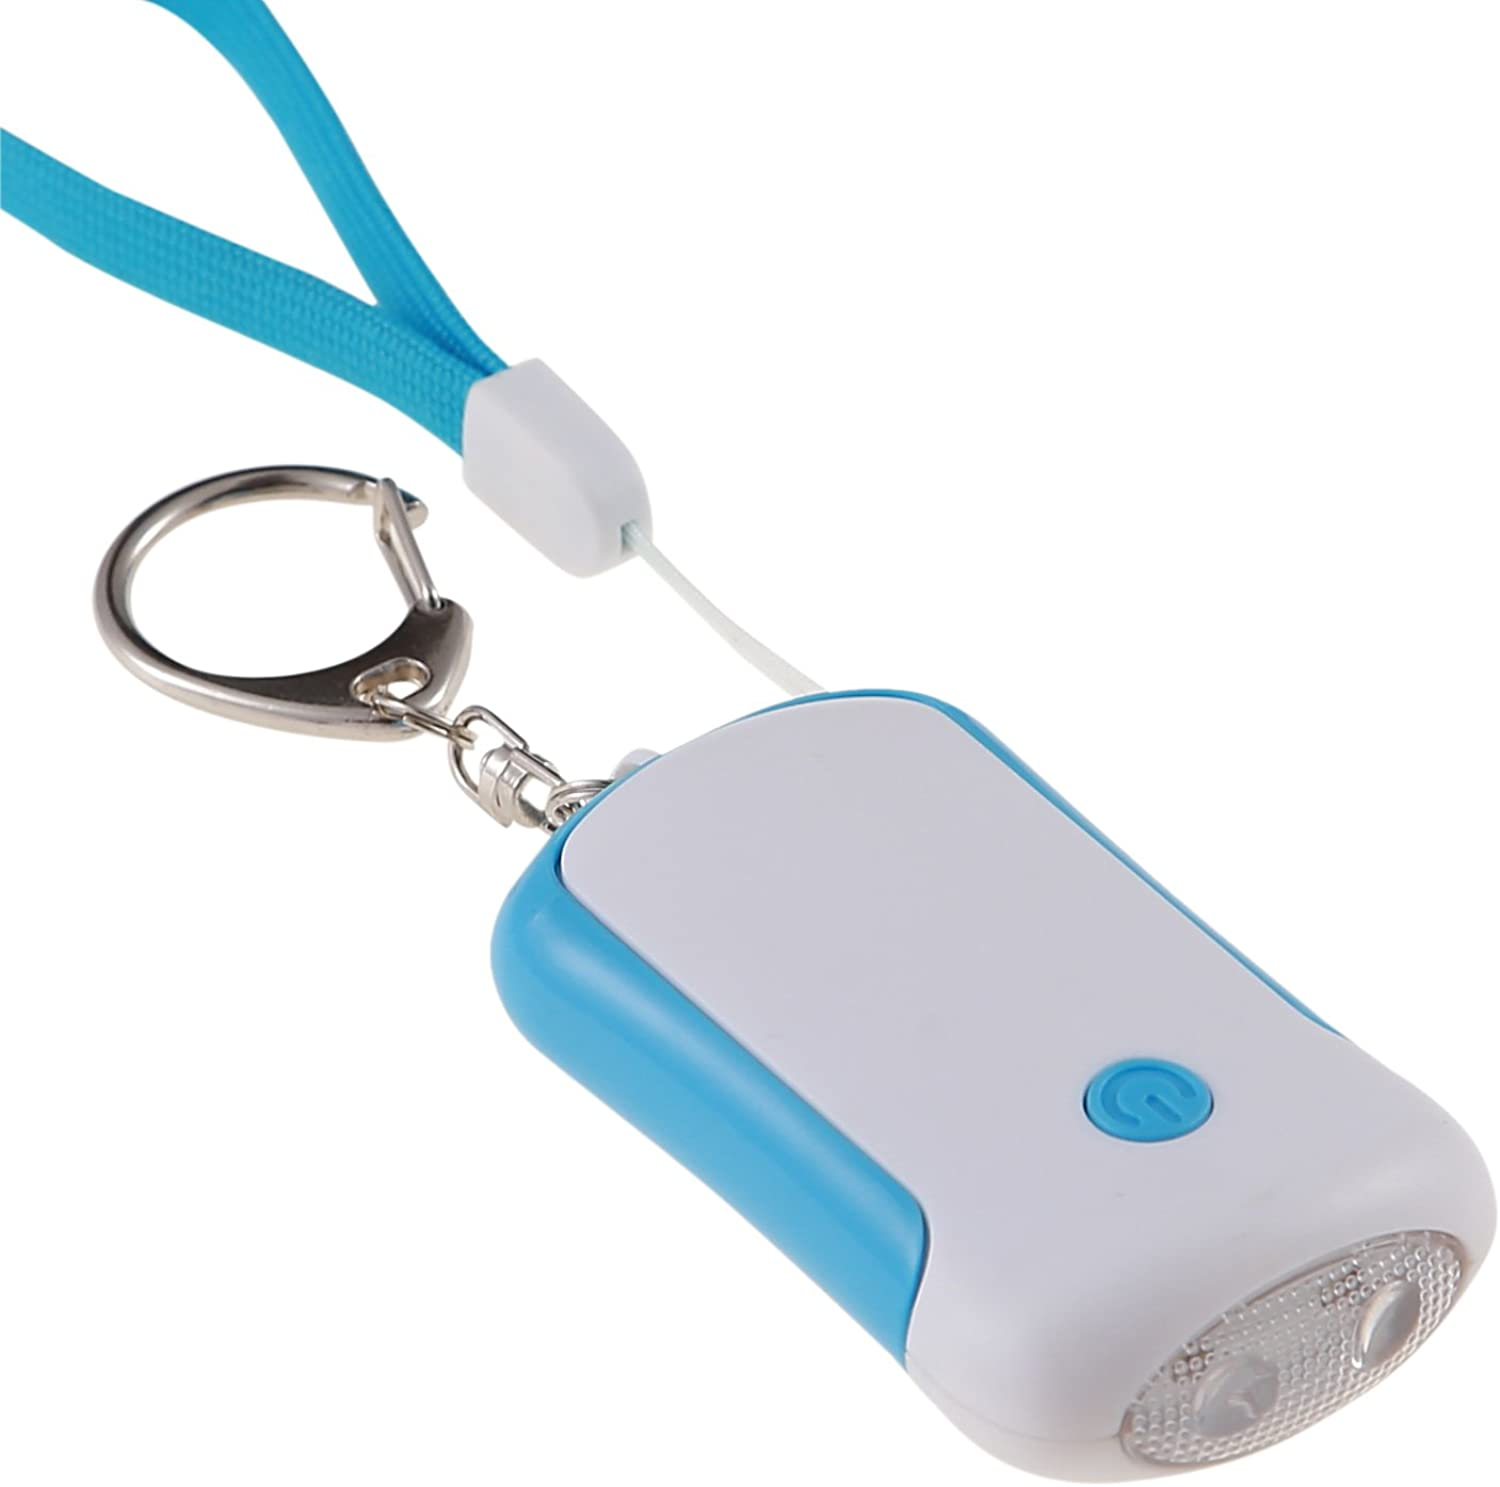 Guard 125dB Personal Alarm, Self Defense Alarm Grenade Style Keychain Pin Activation, Survival Whistle for Rape Attack Defense Women Kids Ederly Emergency,Bag Decoration